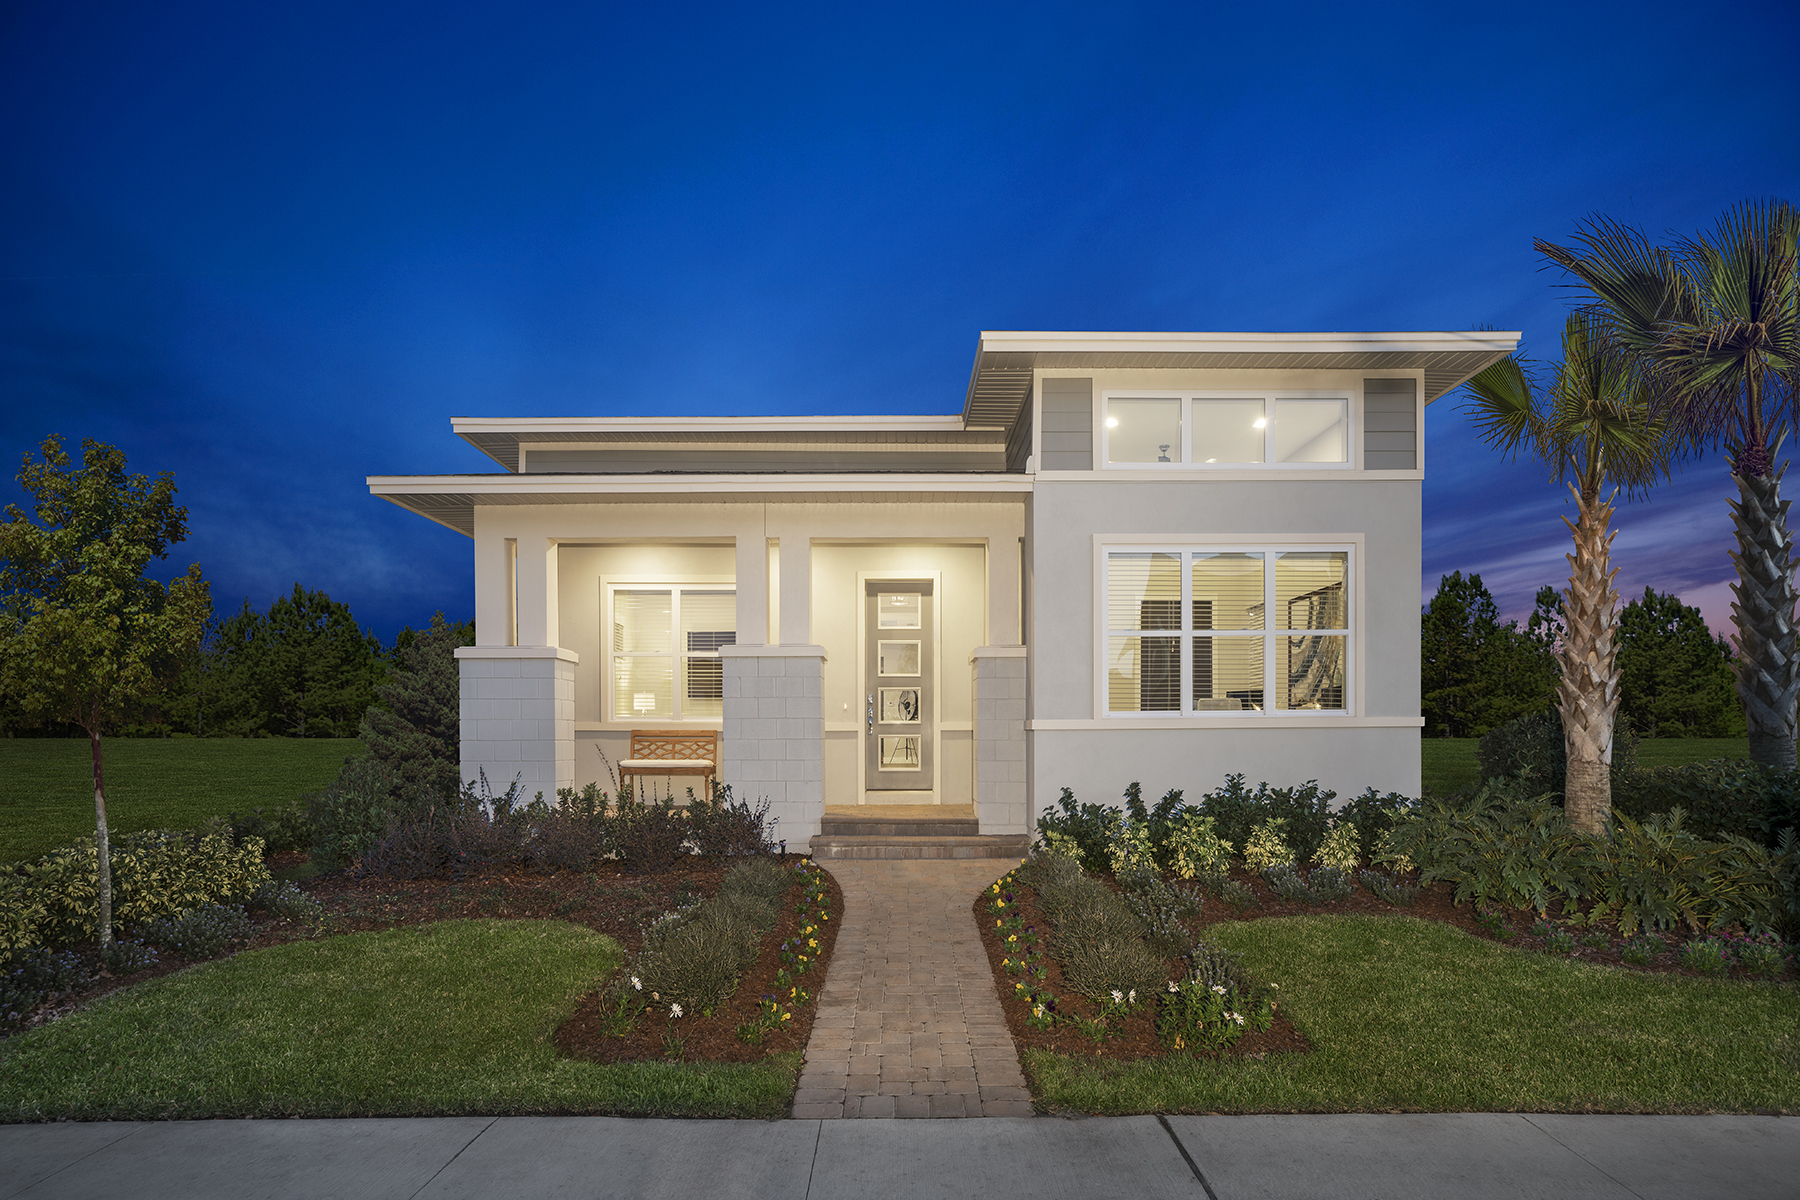 Trinity Townhouse Harper Townhouse Brigham Model Home Laureate Park In Orlando FL